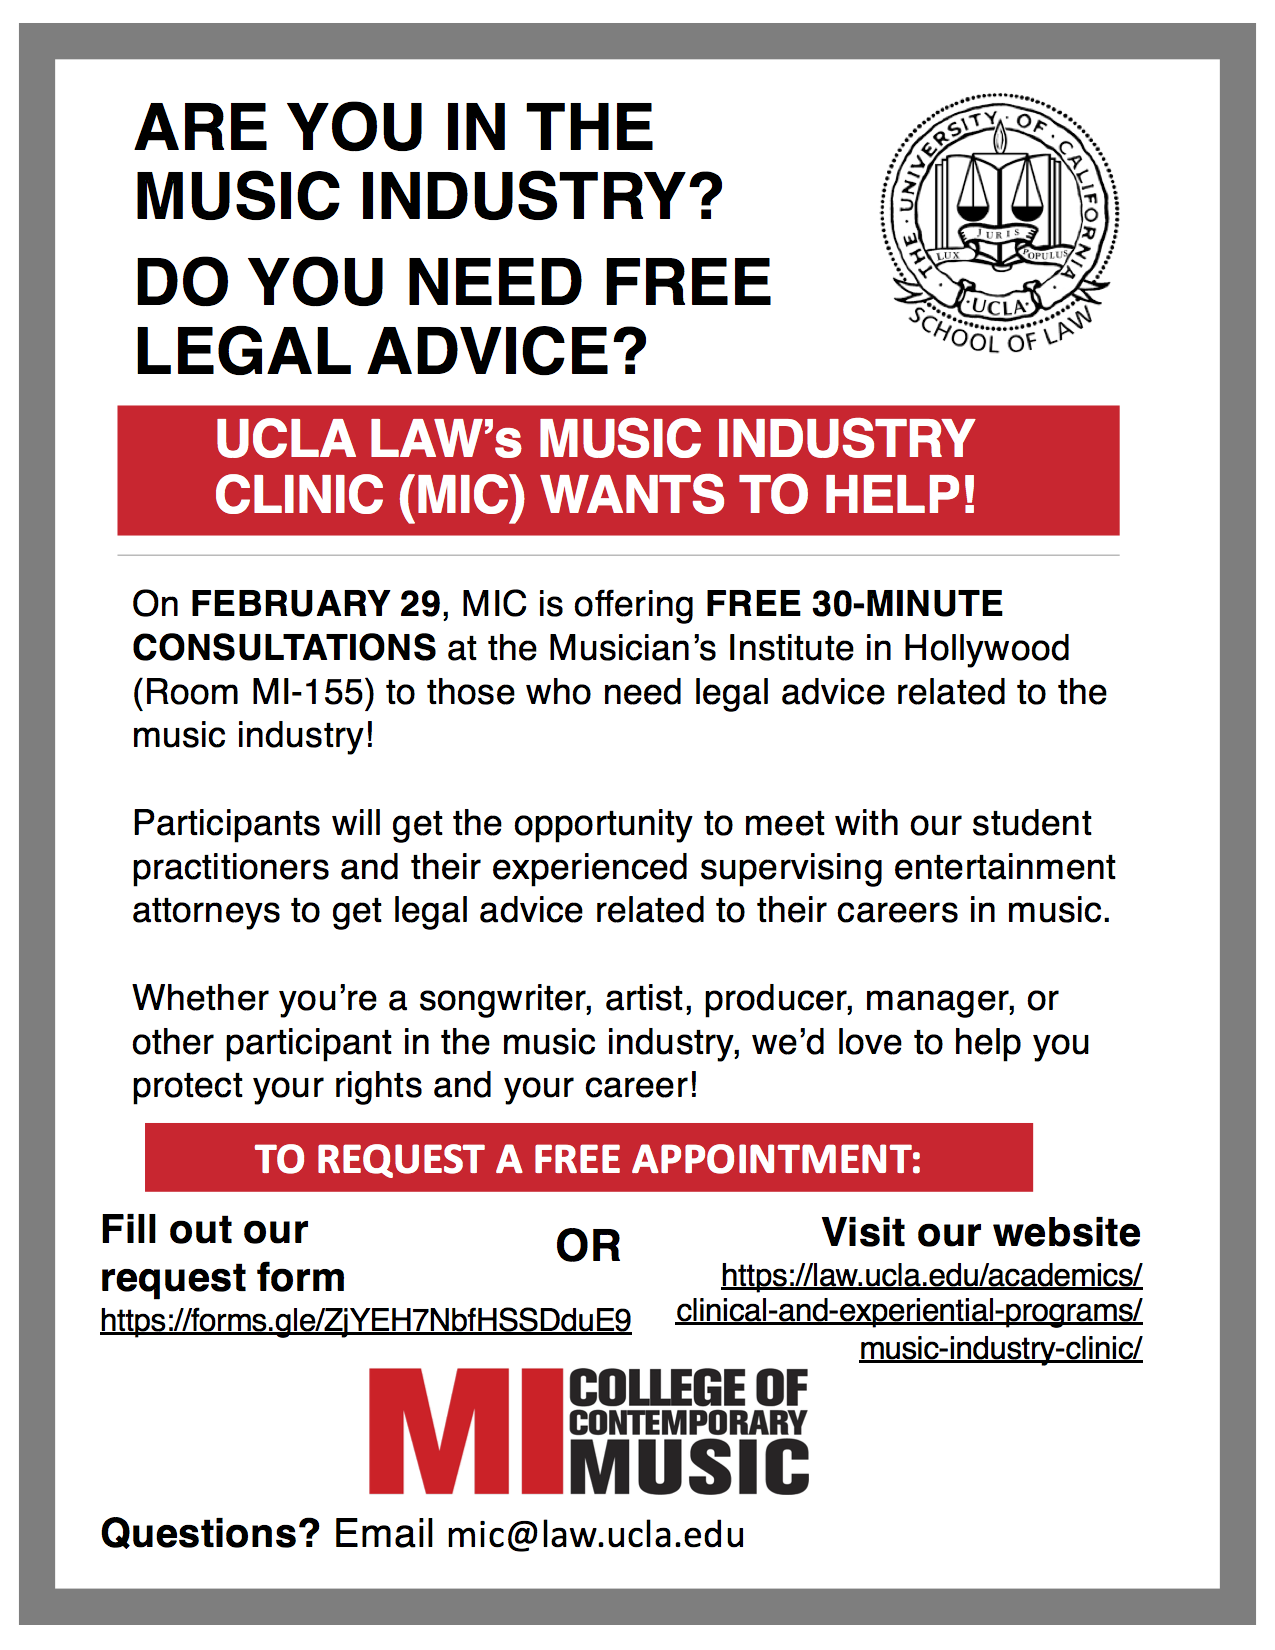 UCLA LAW's Music Industry Clinic (MIC)